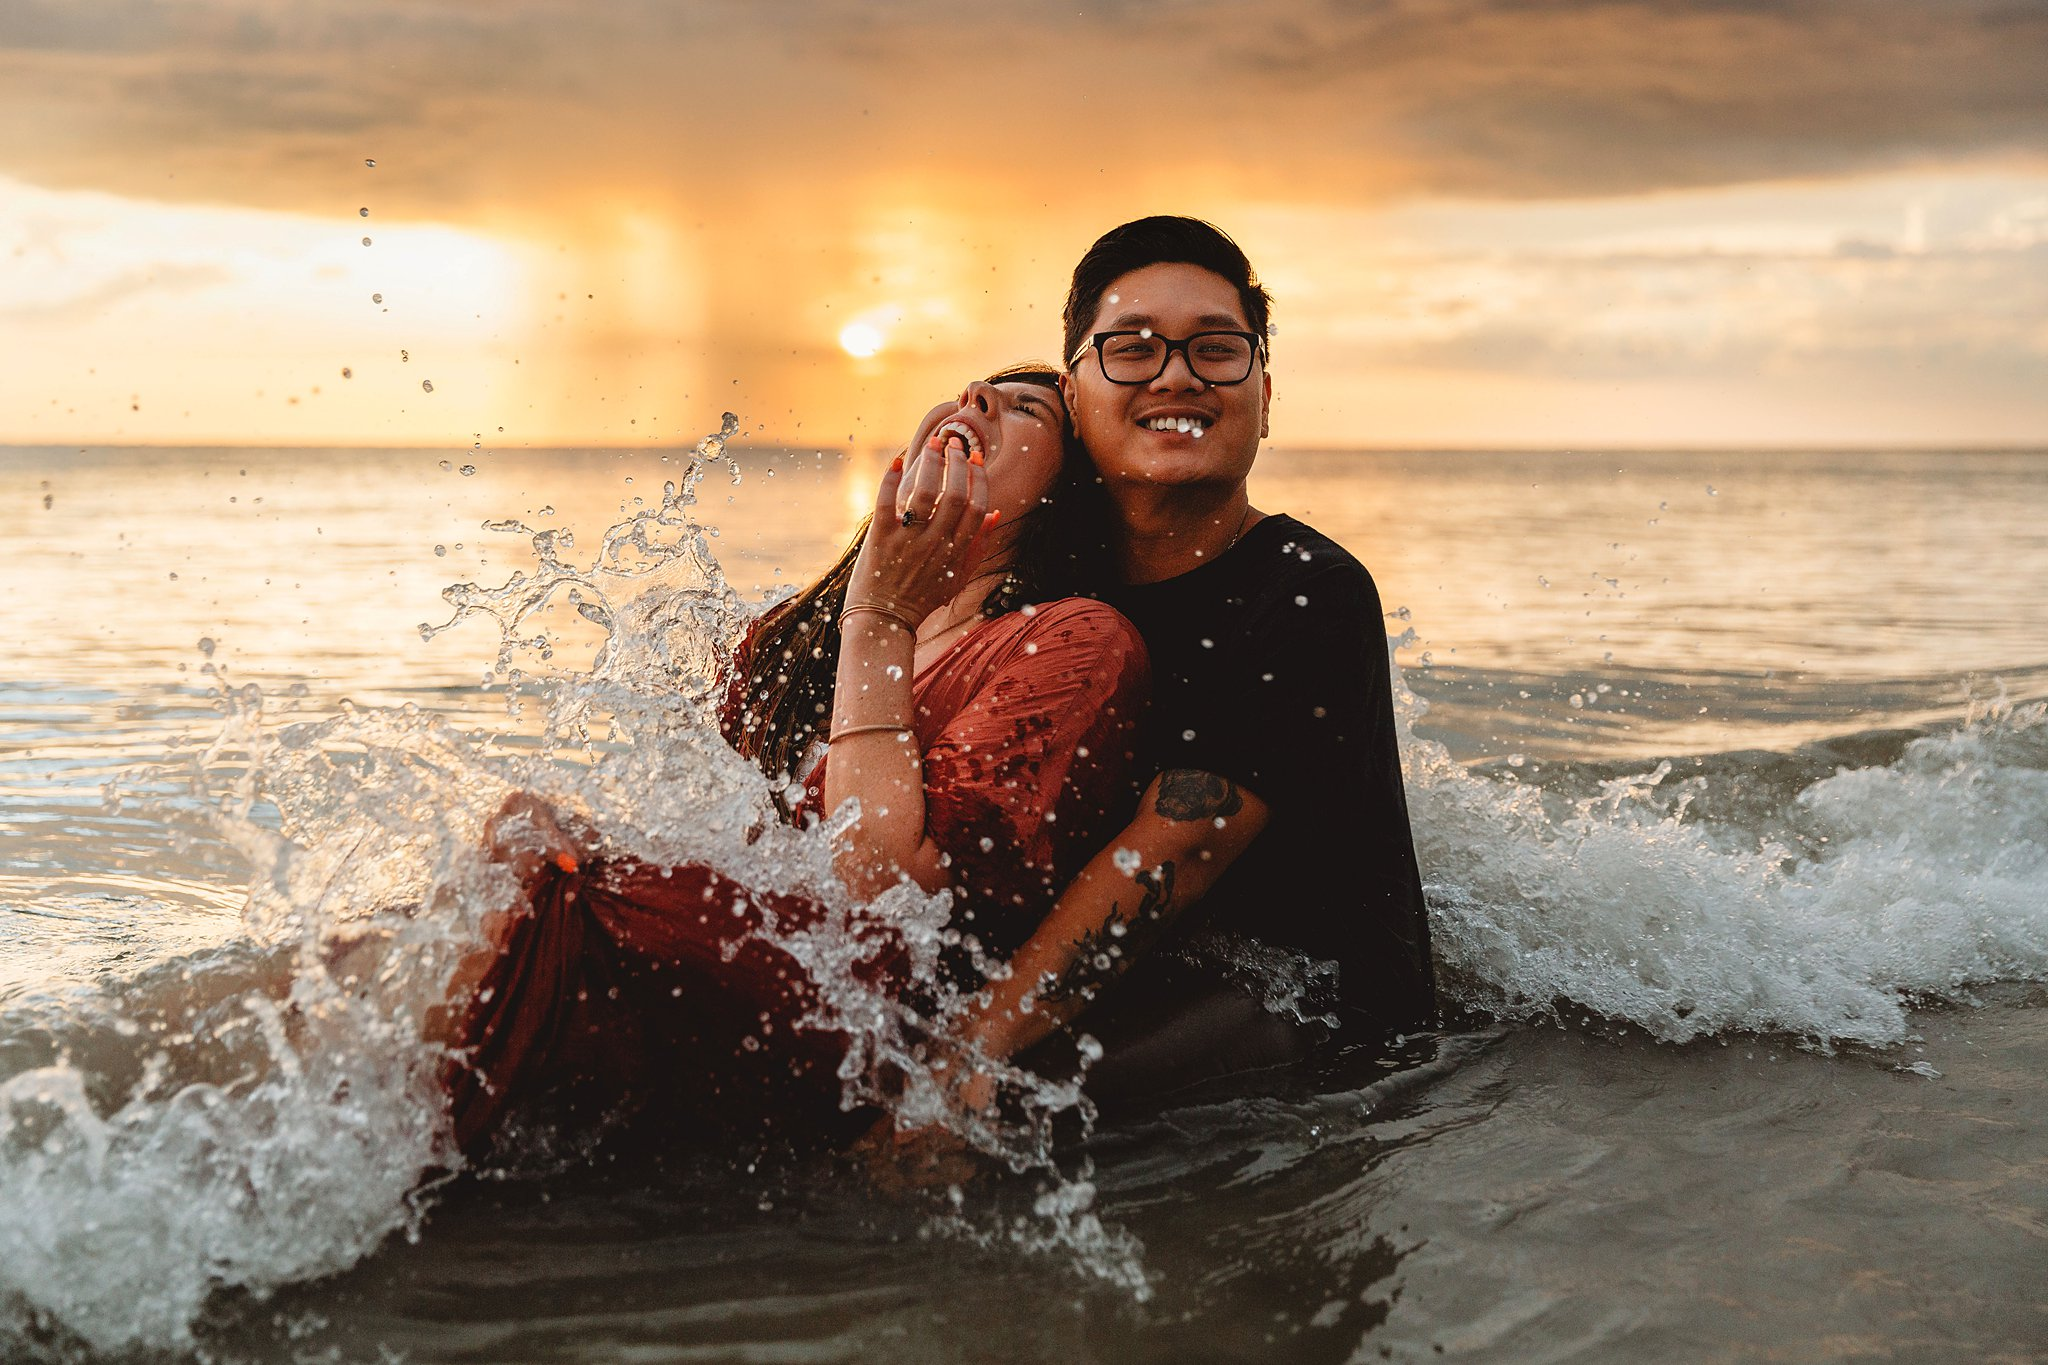 fun and creative couple pose